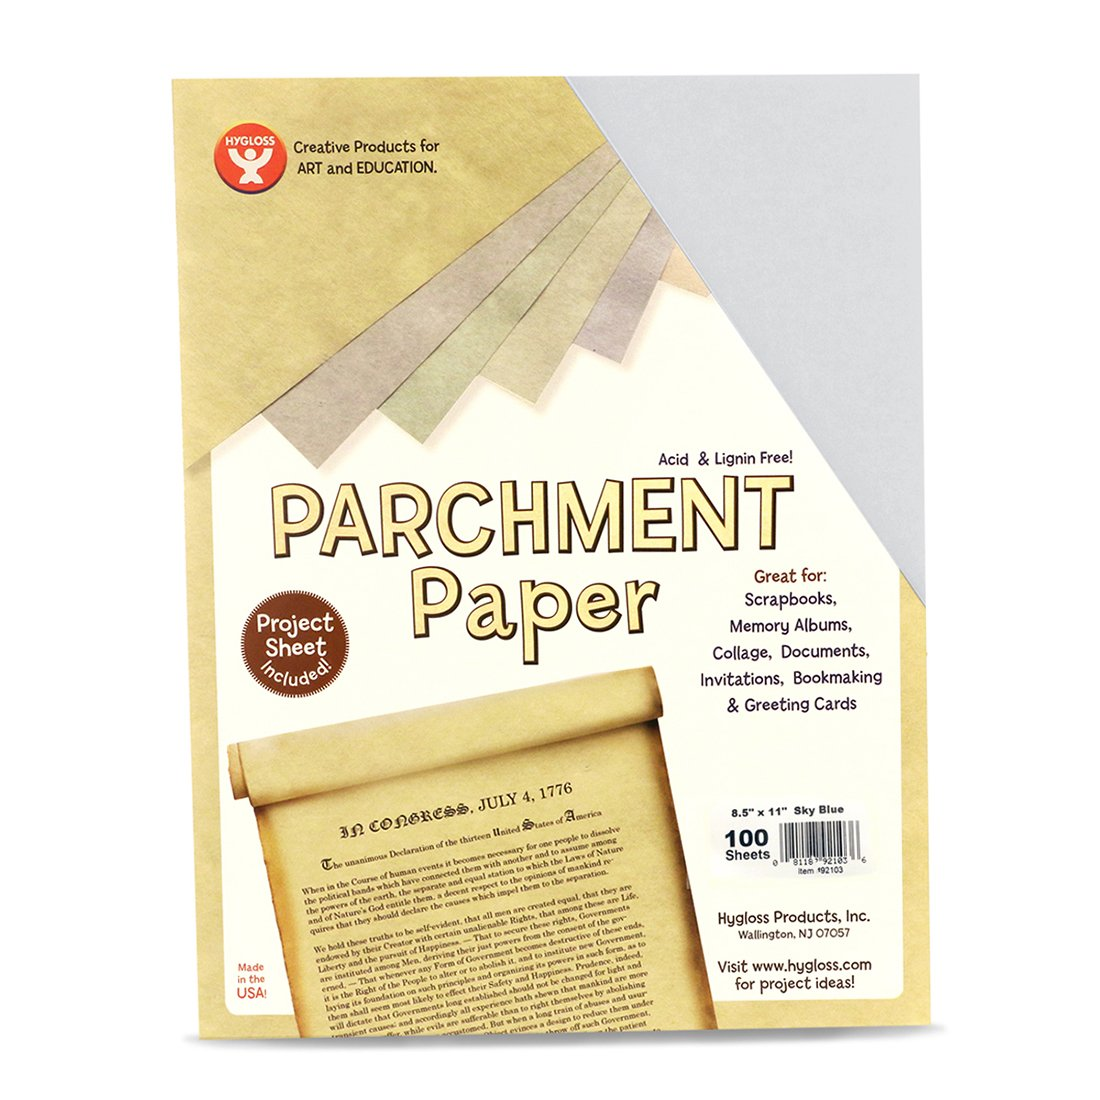 Hygloss Products Craft Parchment Paper Sheets - Printer Friendly, Made in USA - 8-1/2 x 11 Inches, Gold, 30 Pack 92306